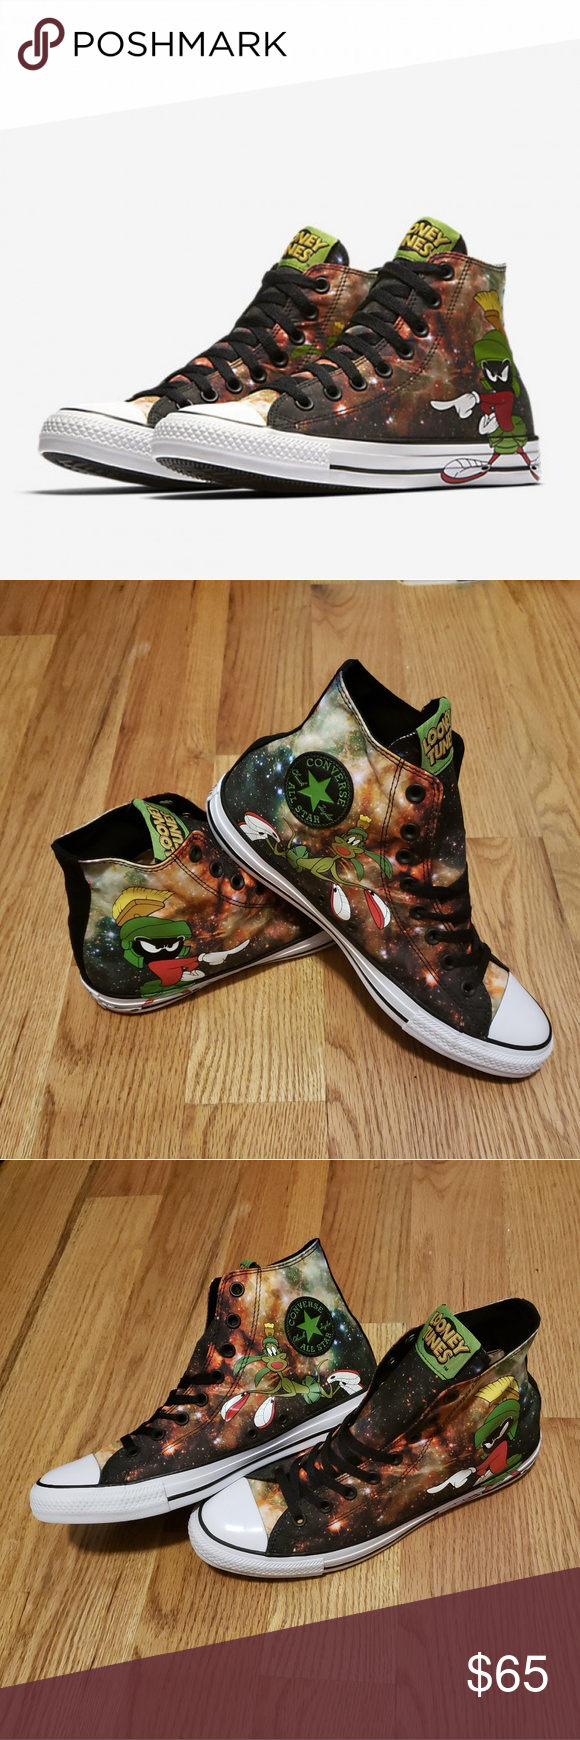 152345c8932 Converse CTAS Marvin the Martian Converse Chuck Taylor All Star Hi Looney  Tunes Marvin The Martian Sneaker 100% Authentic New Without Box Size 10 Mens  12 ...